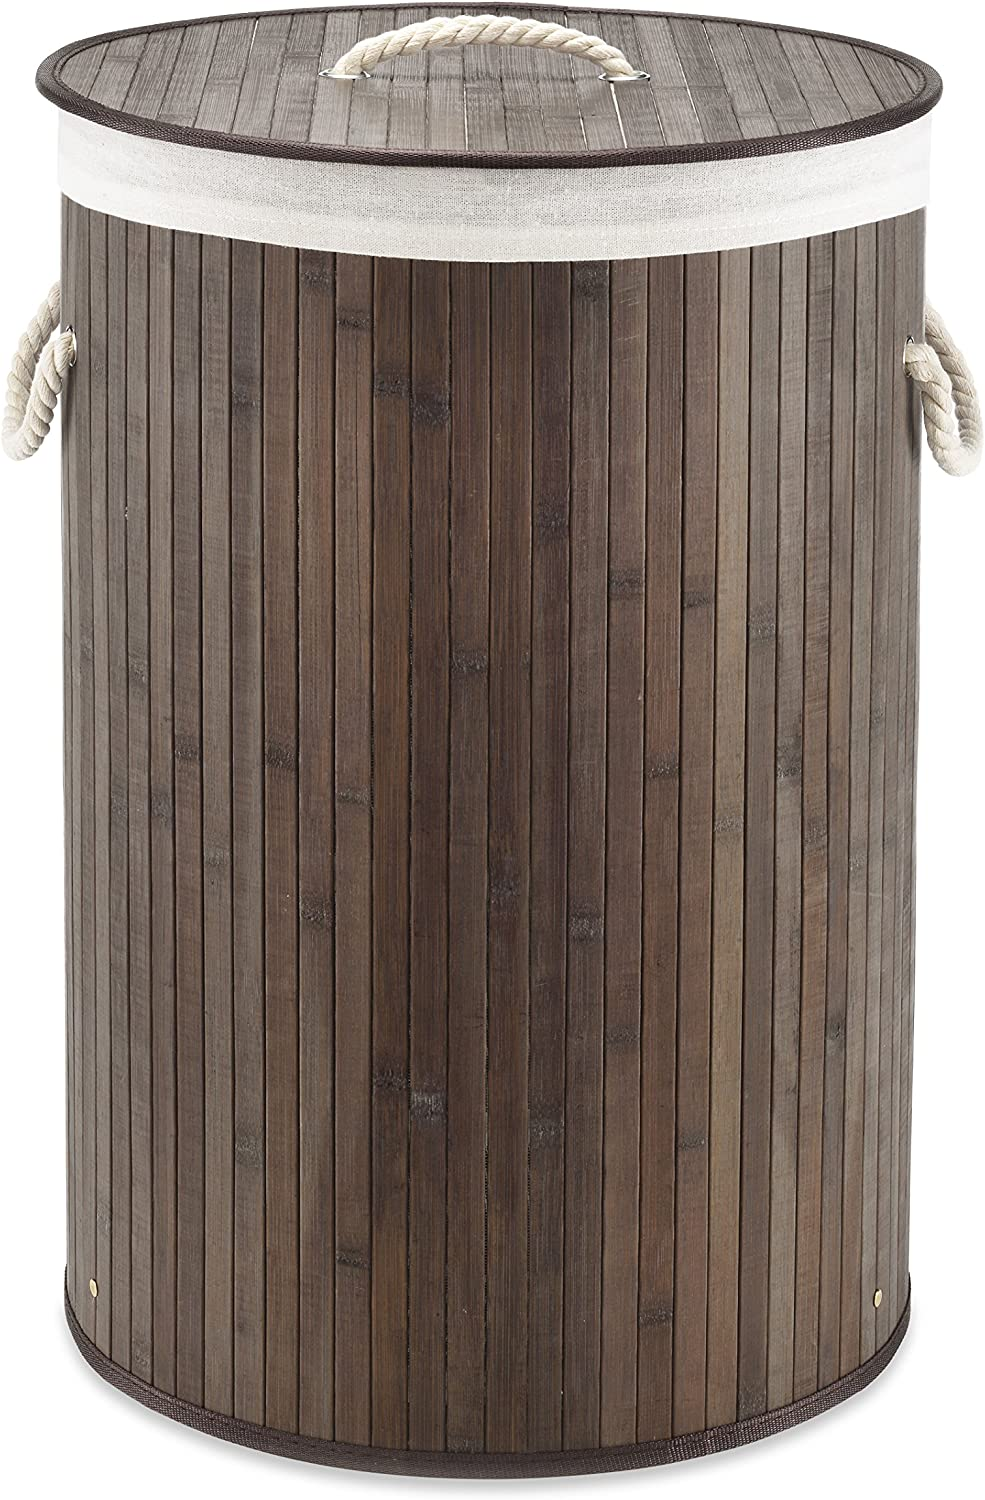 Whitmor Laundry Hamper with Rope Handles Bamboo, 16.25x23.375, Dark Stain